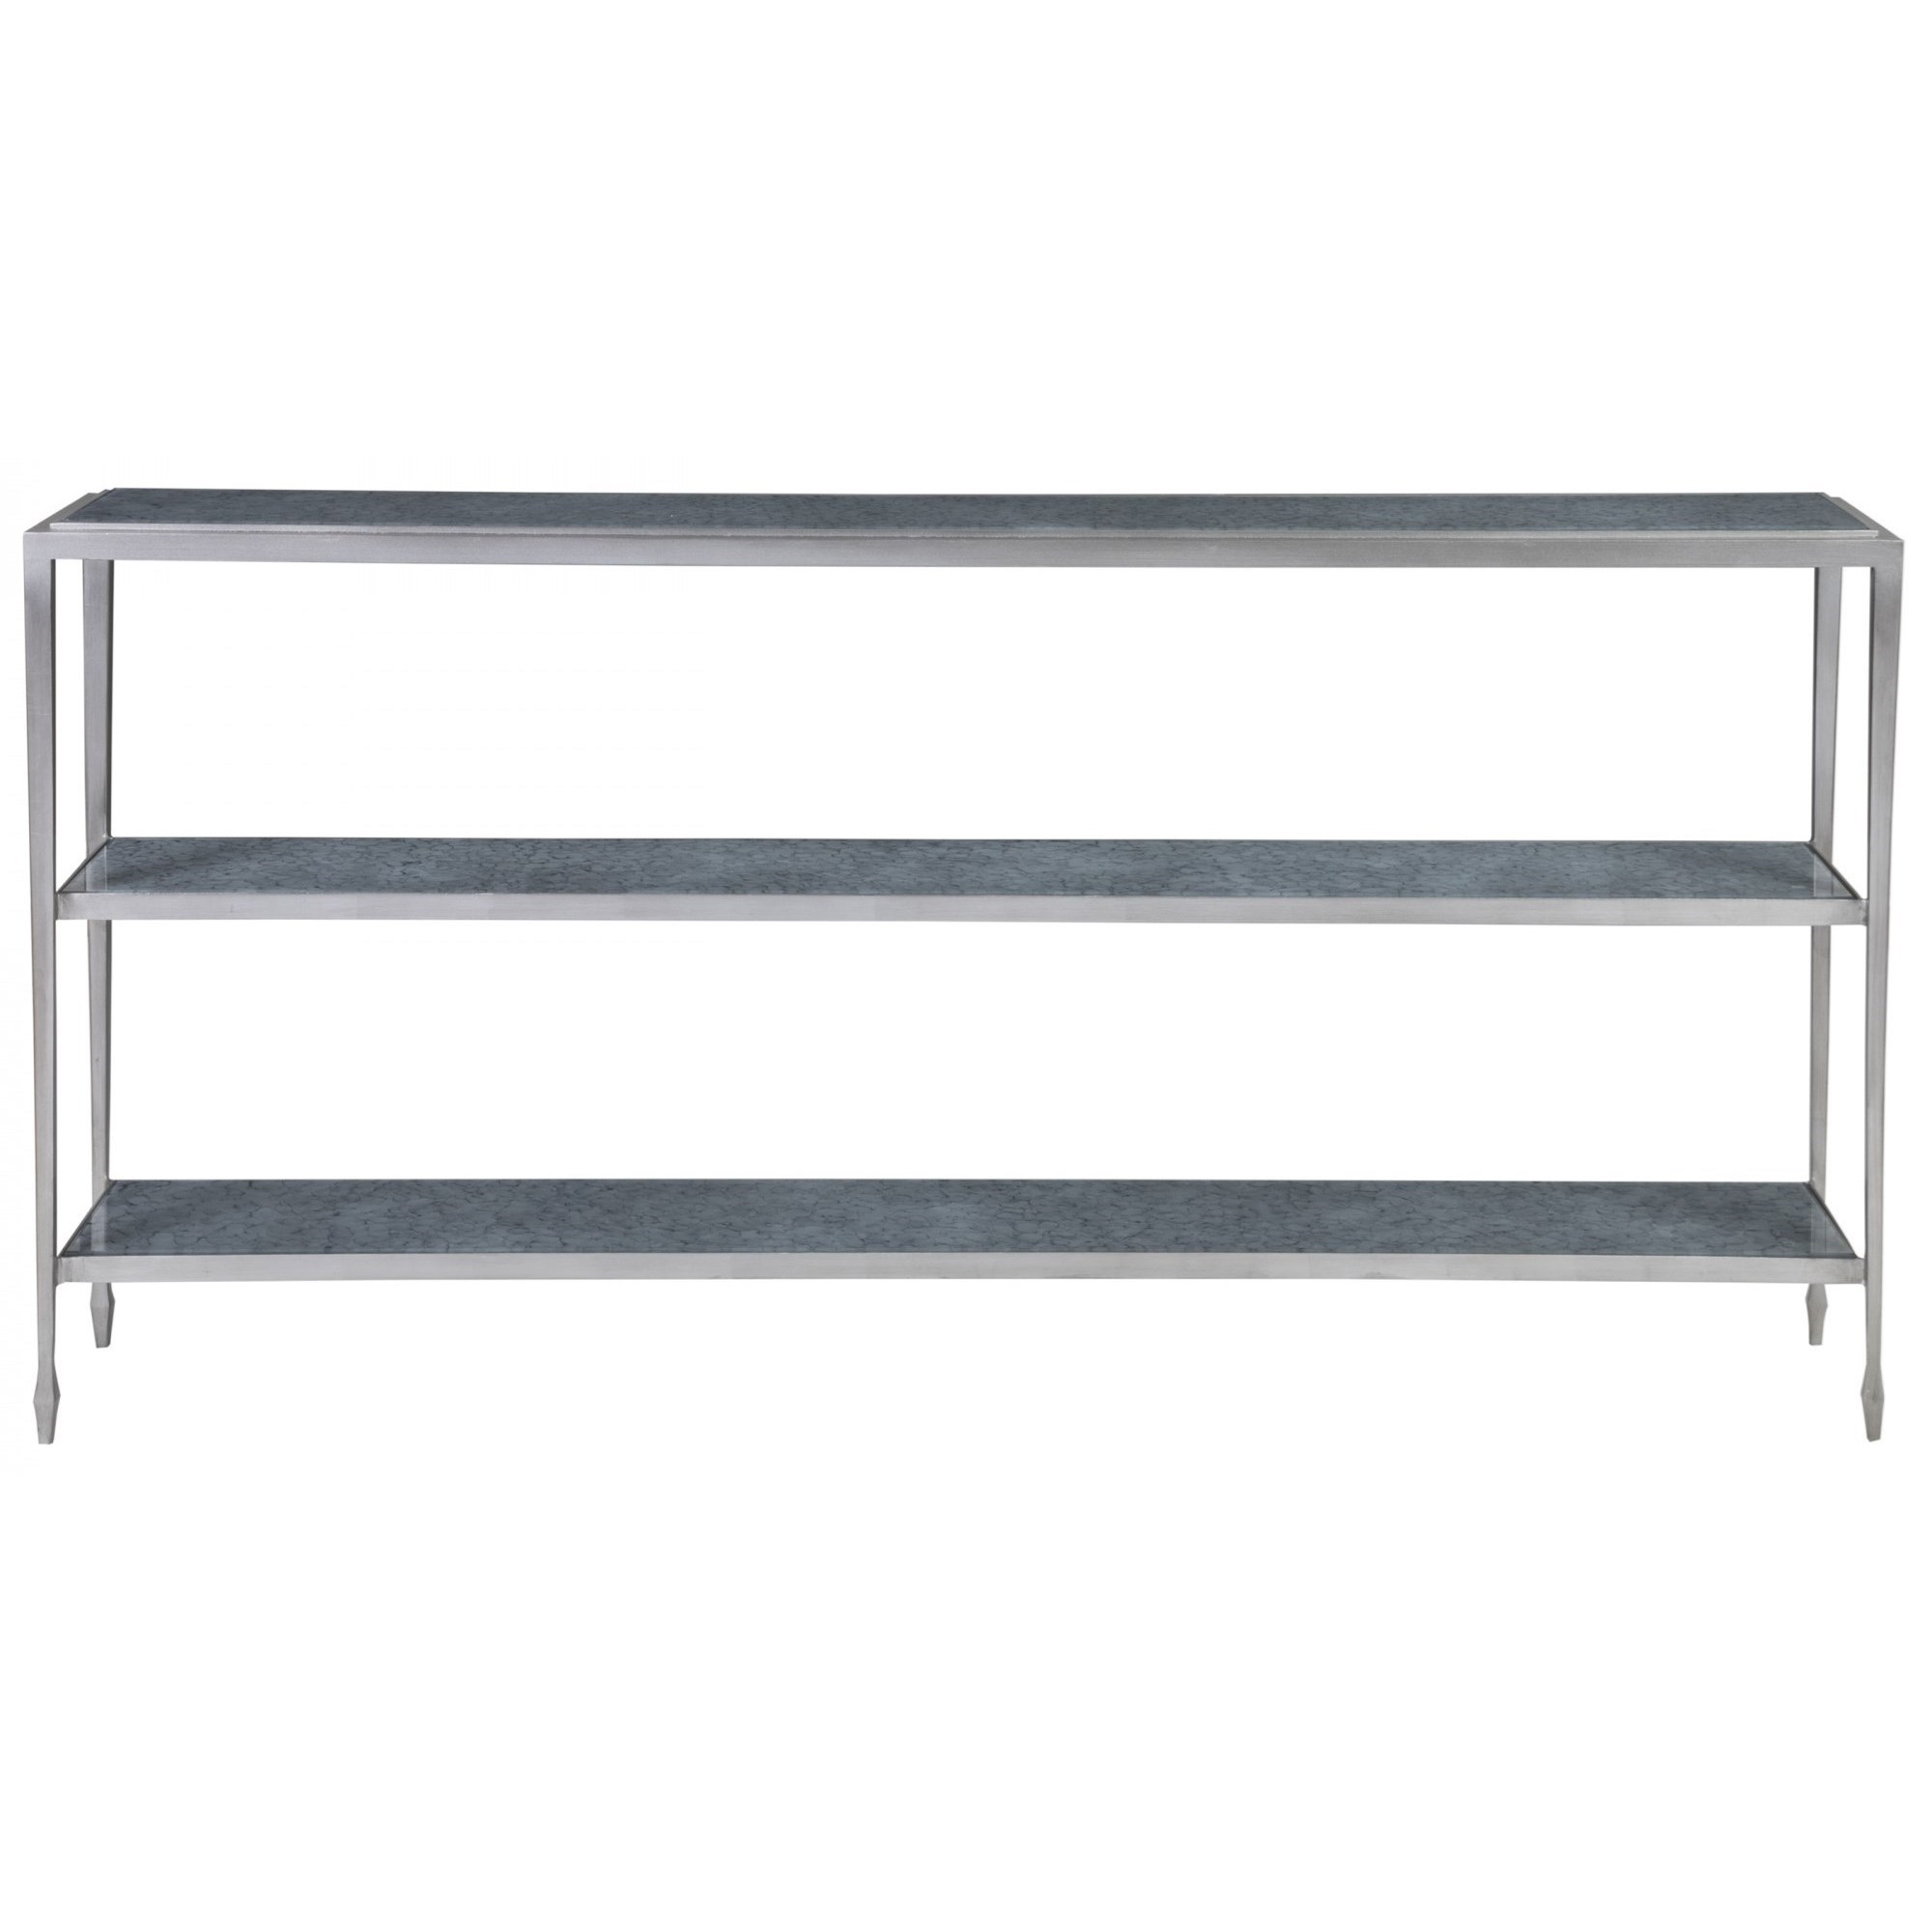 Sashay Console Table by Artistica at Baer's Furniture